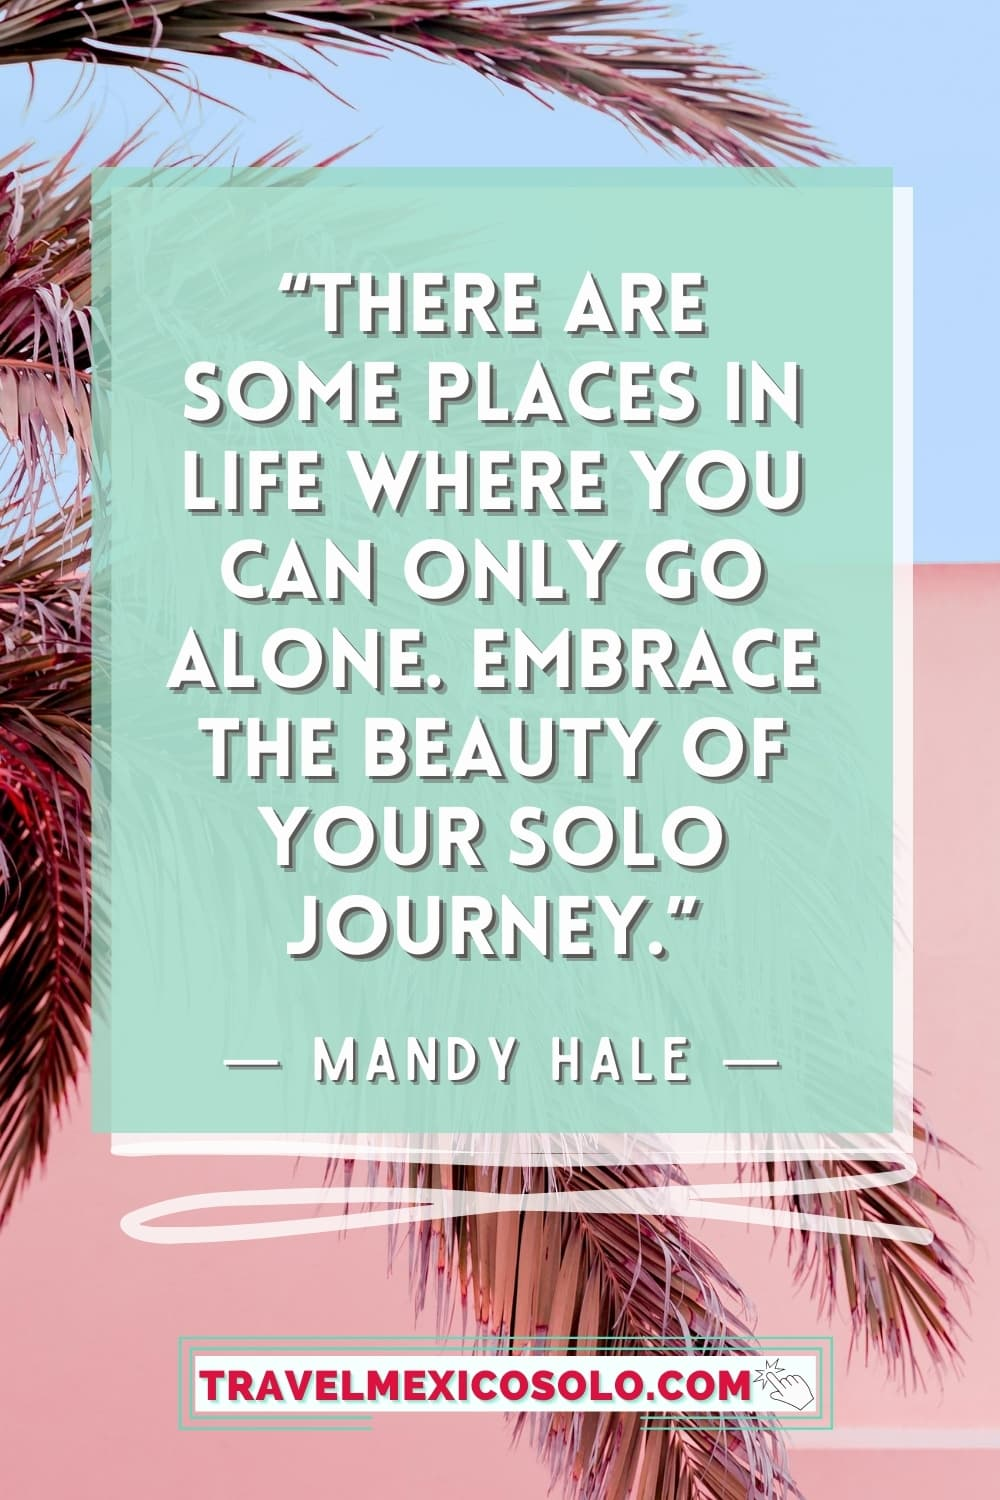 quotes about traveling alone: pinterest image with solo travel quote